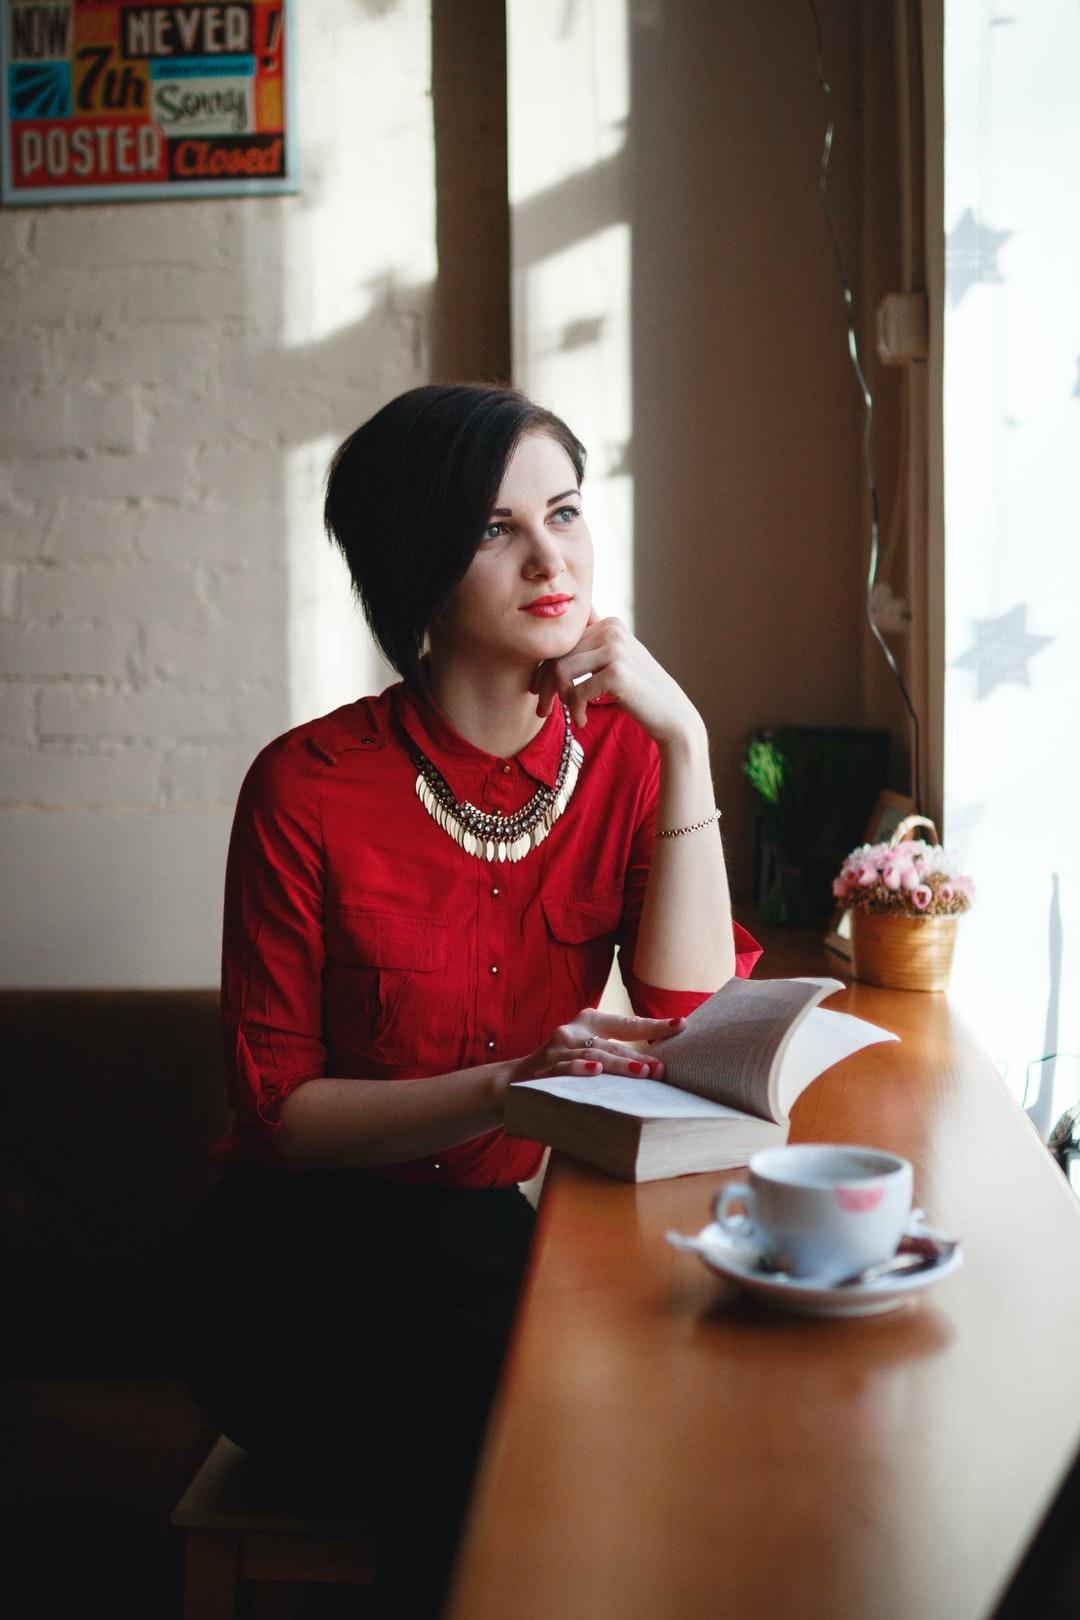 Red shirt woman in a cafe